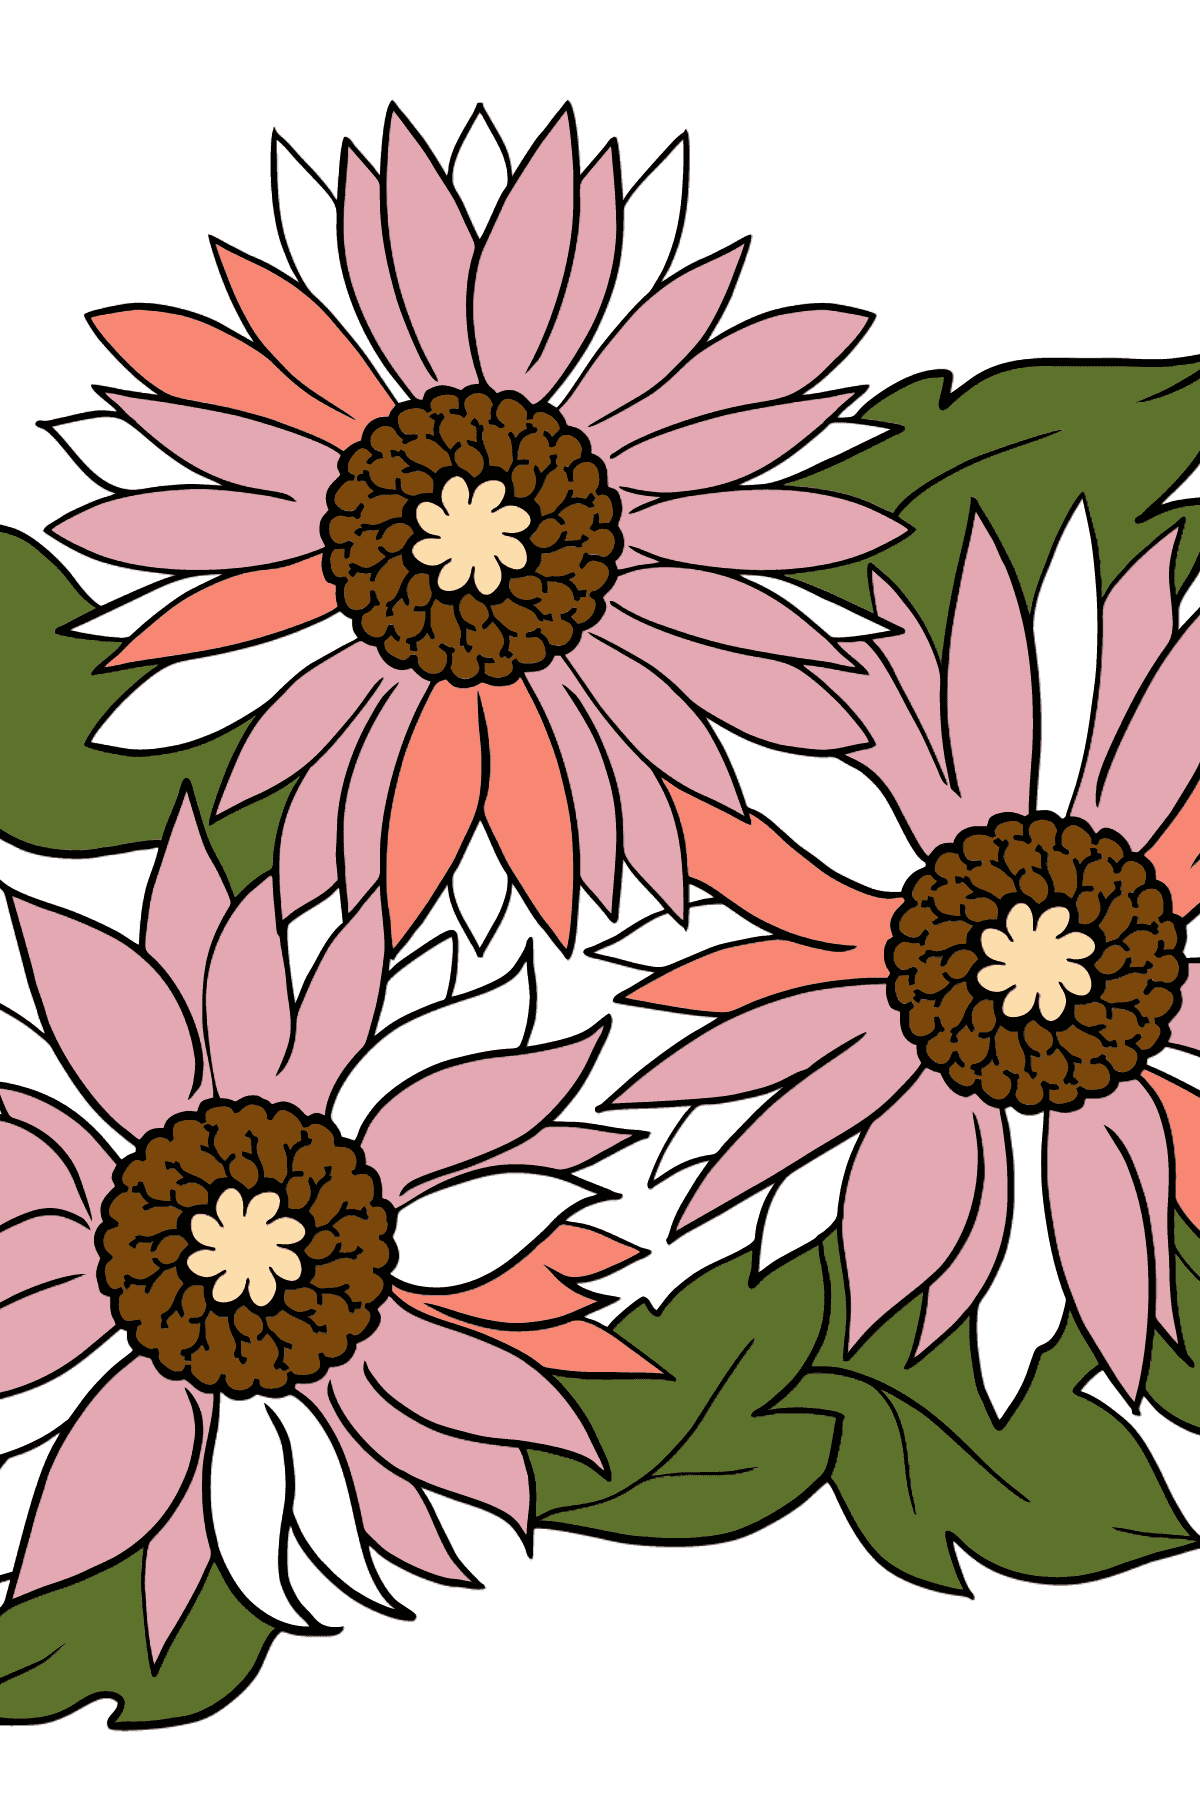 Coloring Flowers for the Youngest Children - Pink Gerbera - Coloring Pages for Kids